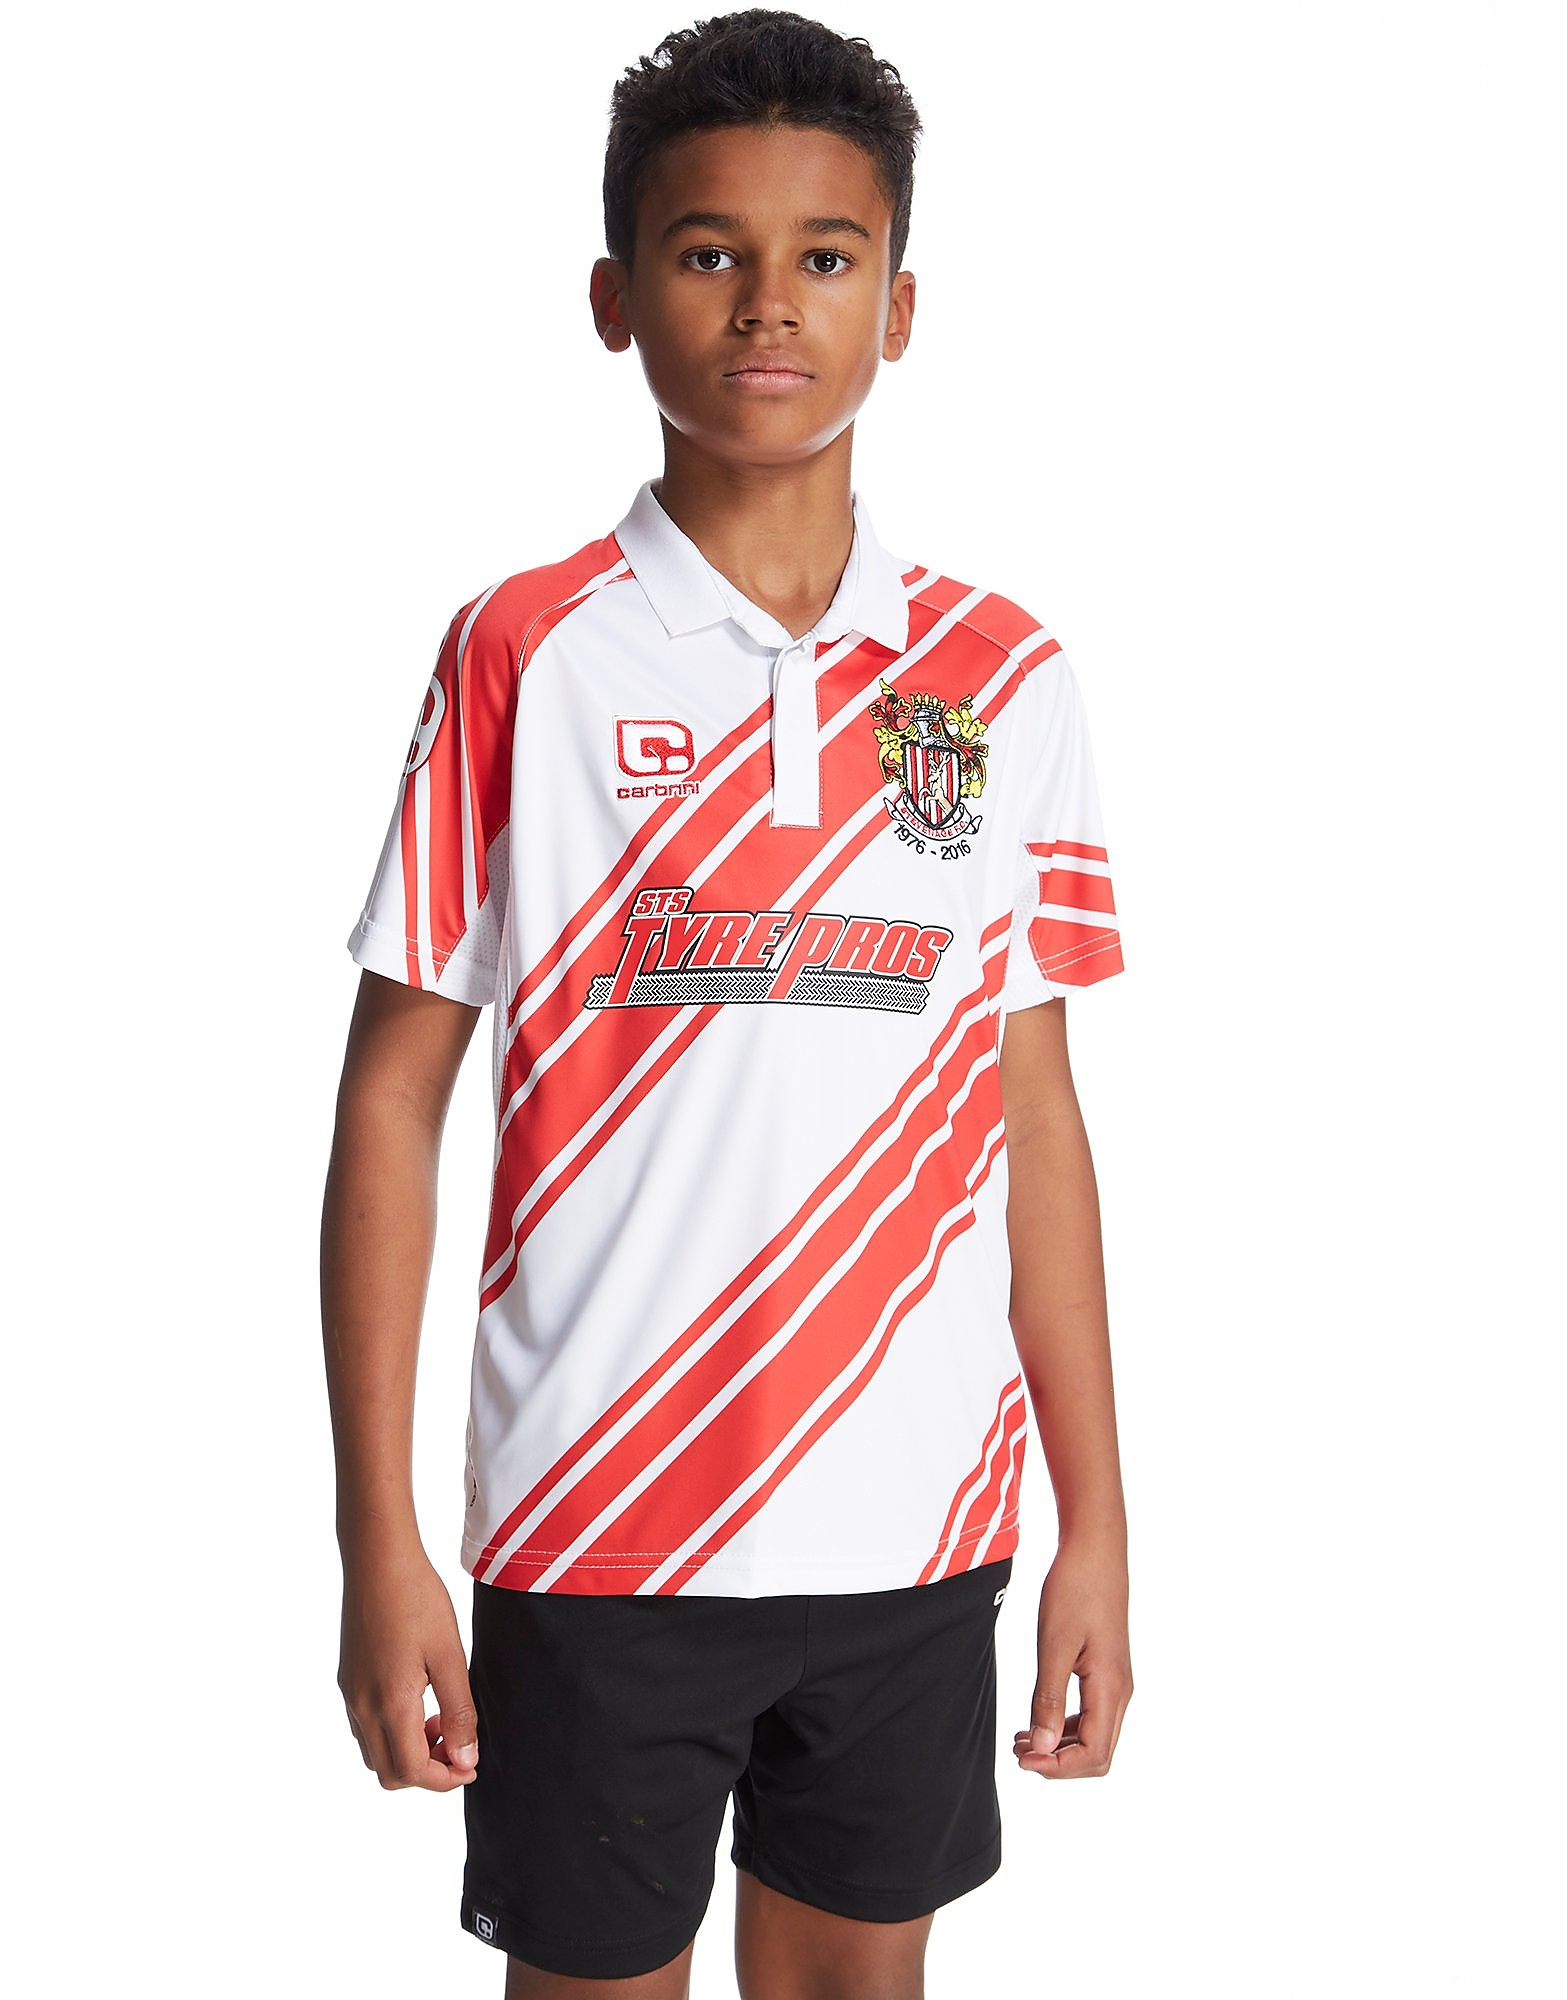 Carbrini Stevenage FC 2016/17 Home Shirt Junior